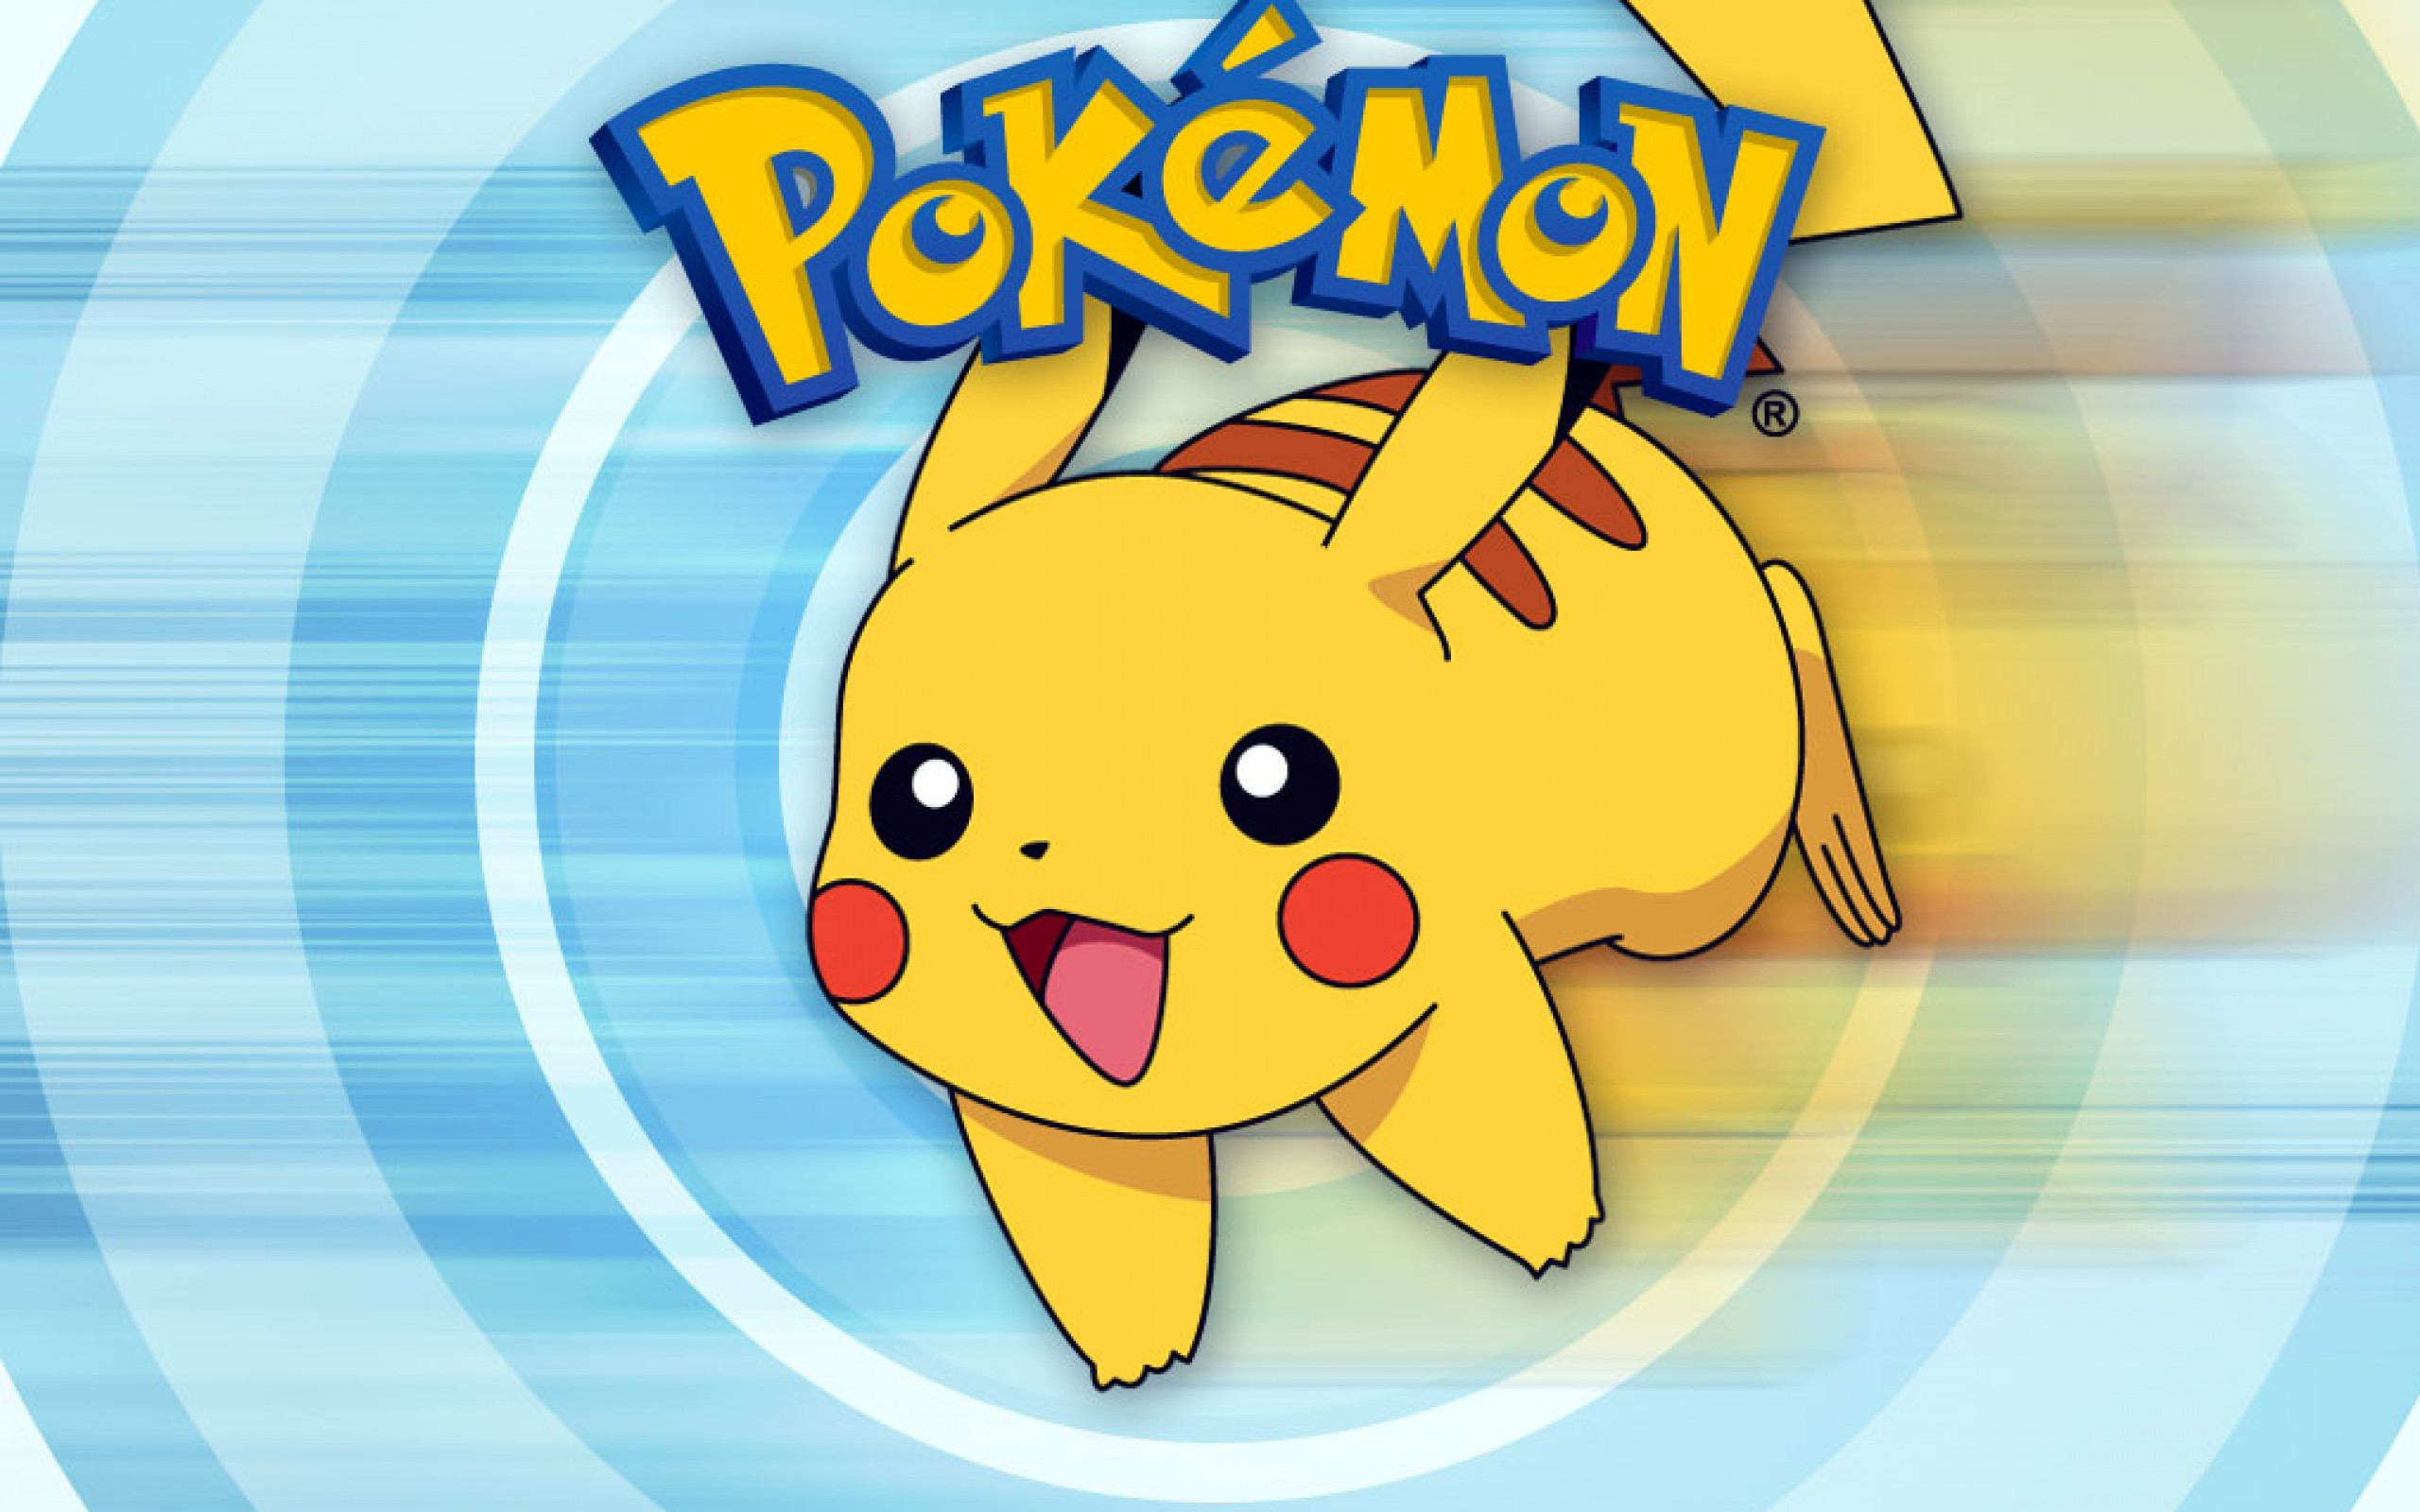 Pokemon Pikachu Wallpapers WallpaperTag